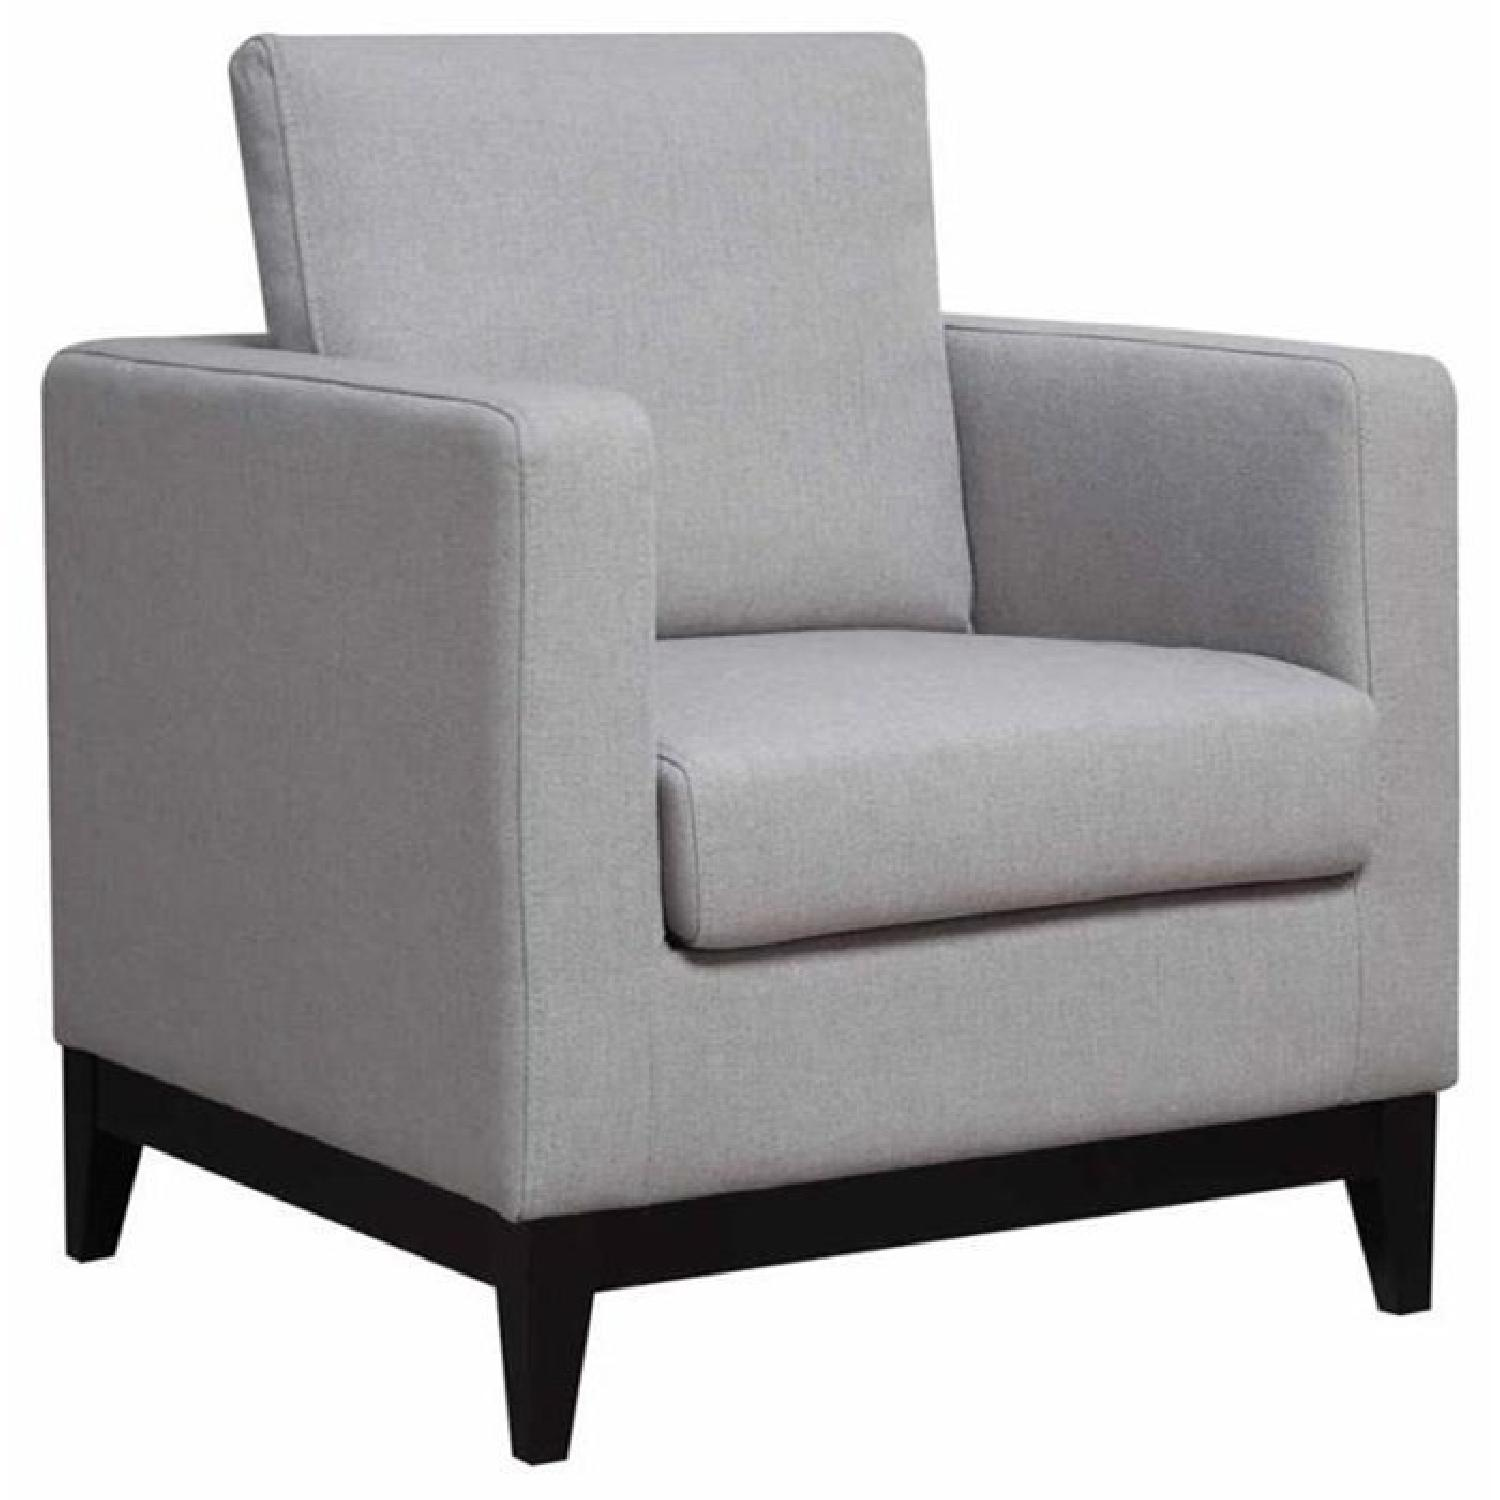 contemporary accent chairs with arms tiffany blue chair covers for sale modern style square and frame in